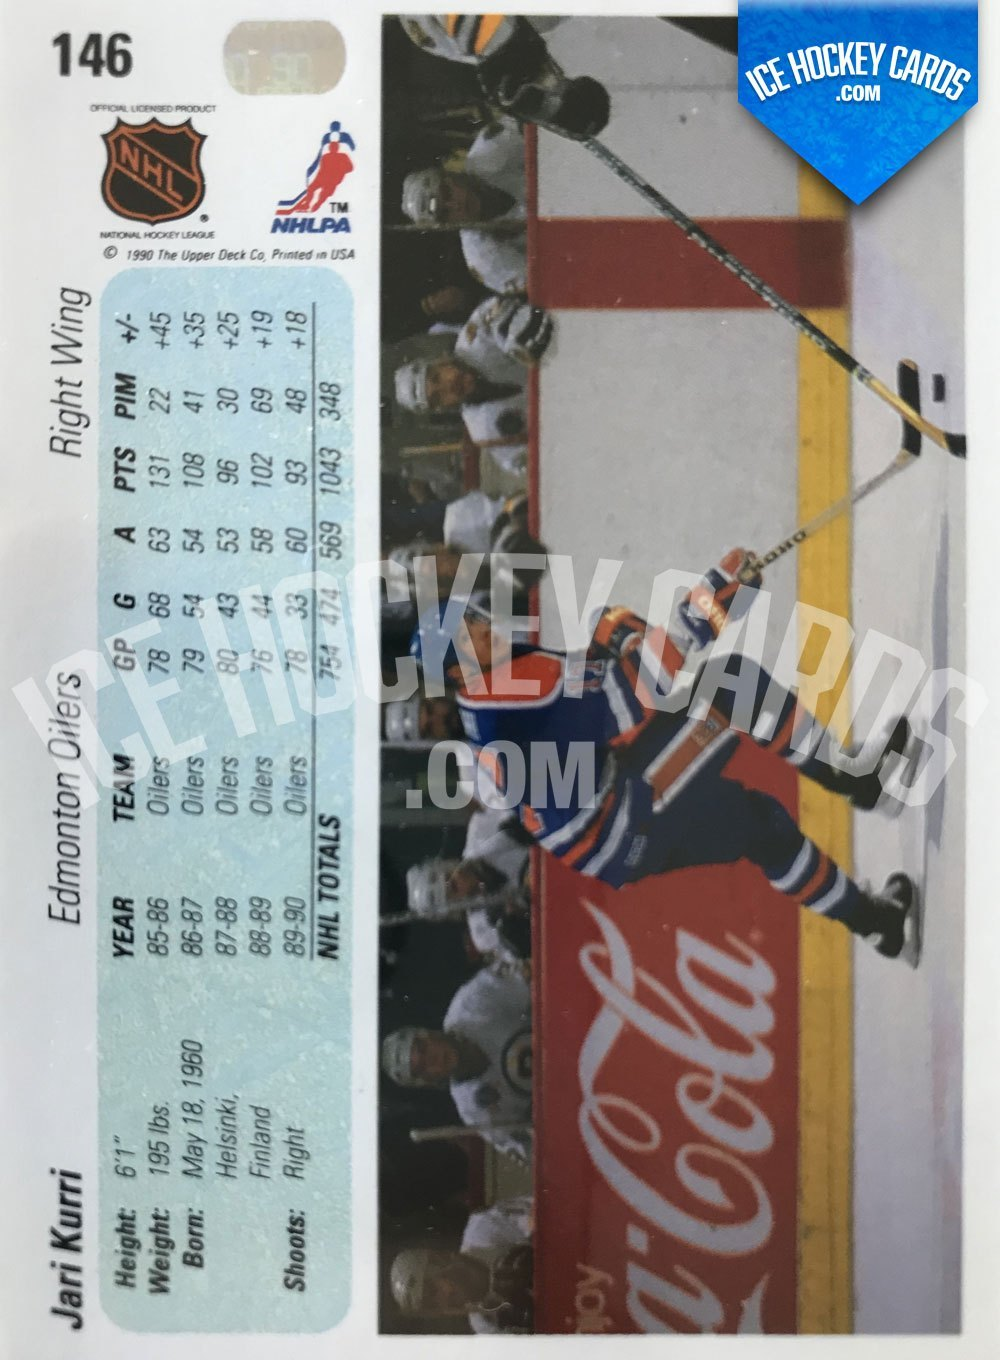 Upper Deck - 90-91 - Jari Kurri Base Card back